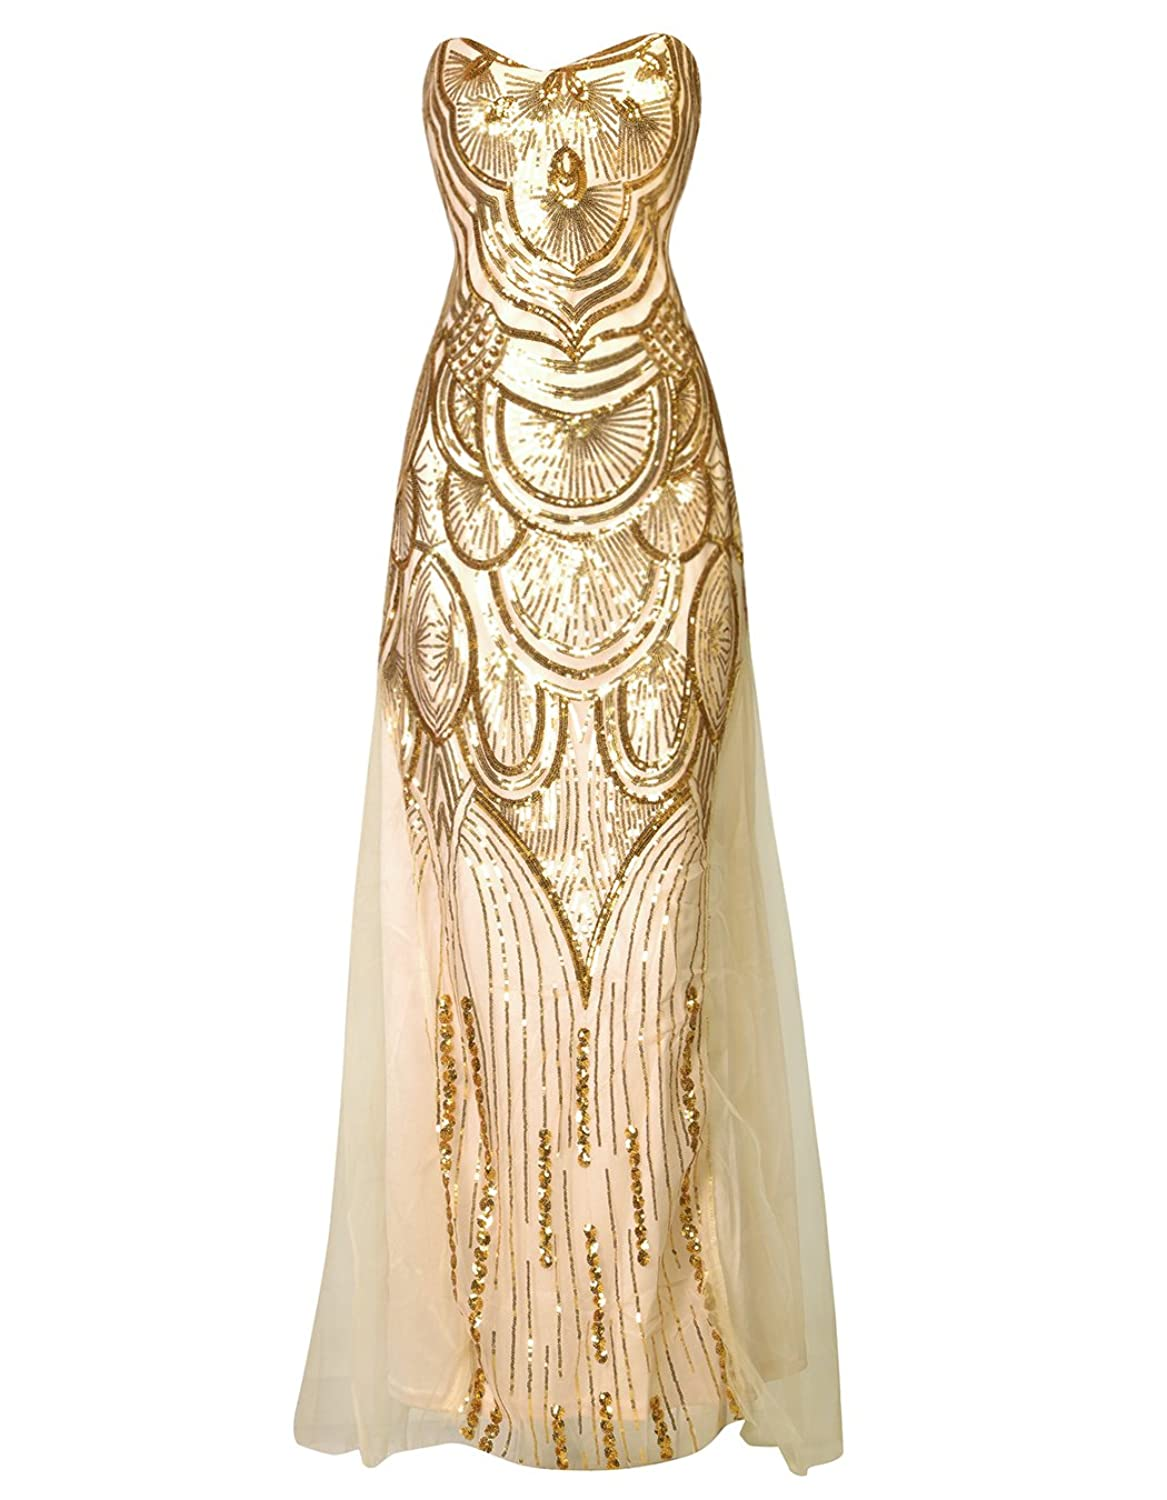 Amazon wedding dresses wedding gowns bridesmaid mother of oofit womens gold sequin strapless sweetheart mesh lace up banquet dress ombrellifo Choice Image